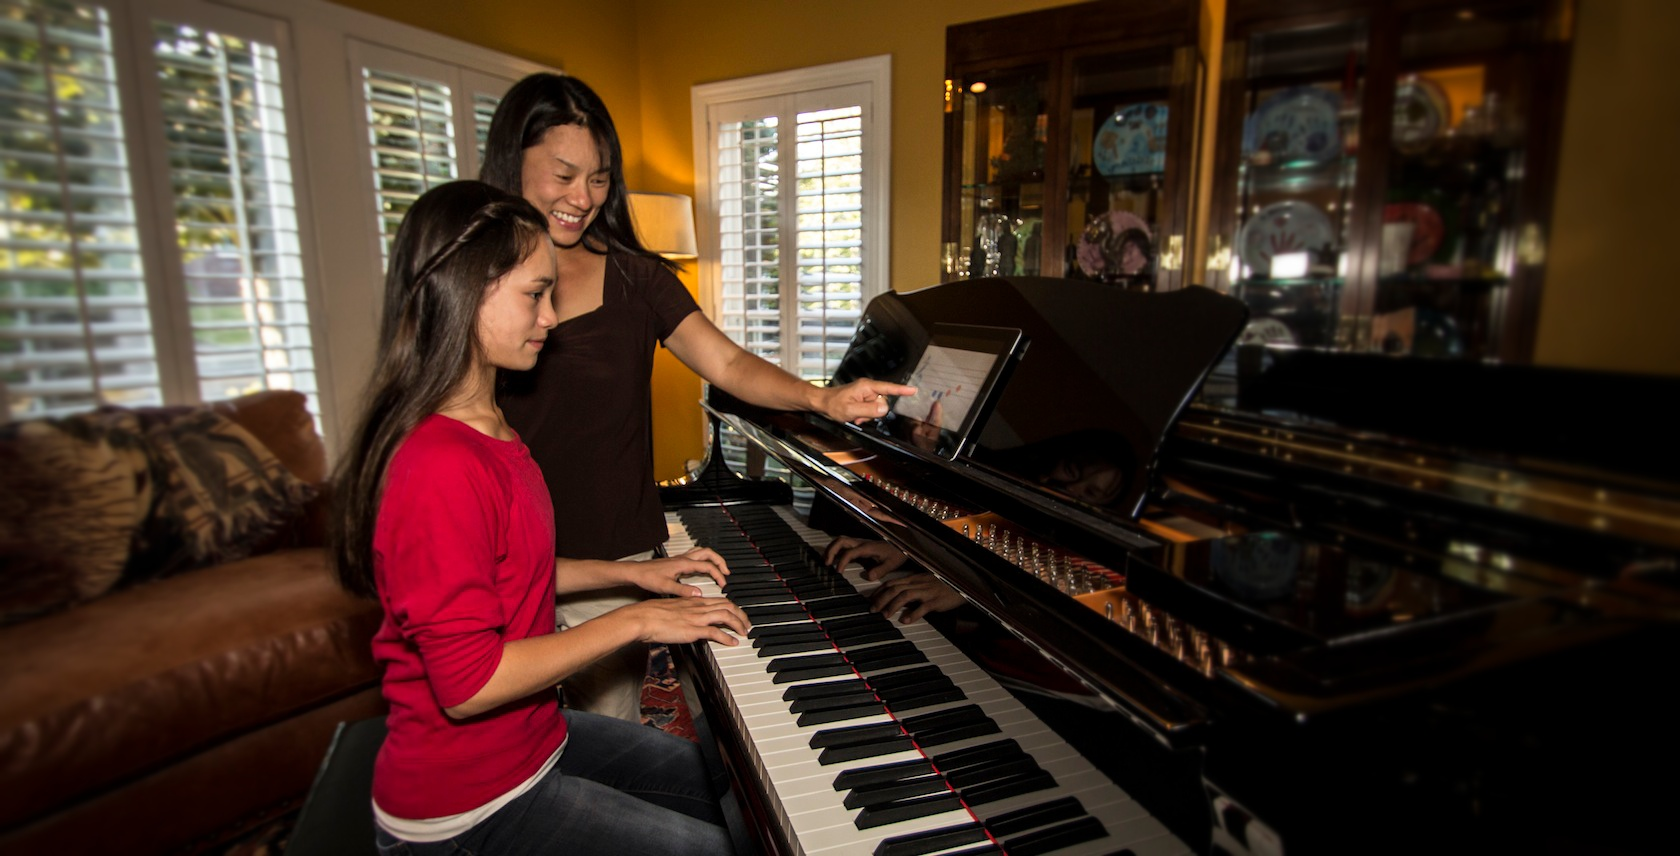 Take Advantage Of The Piano Online Classes From Great Instructors and Master The Art